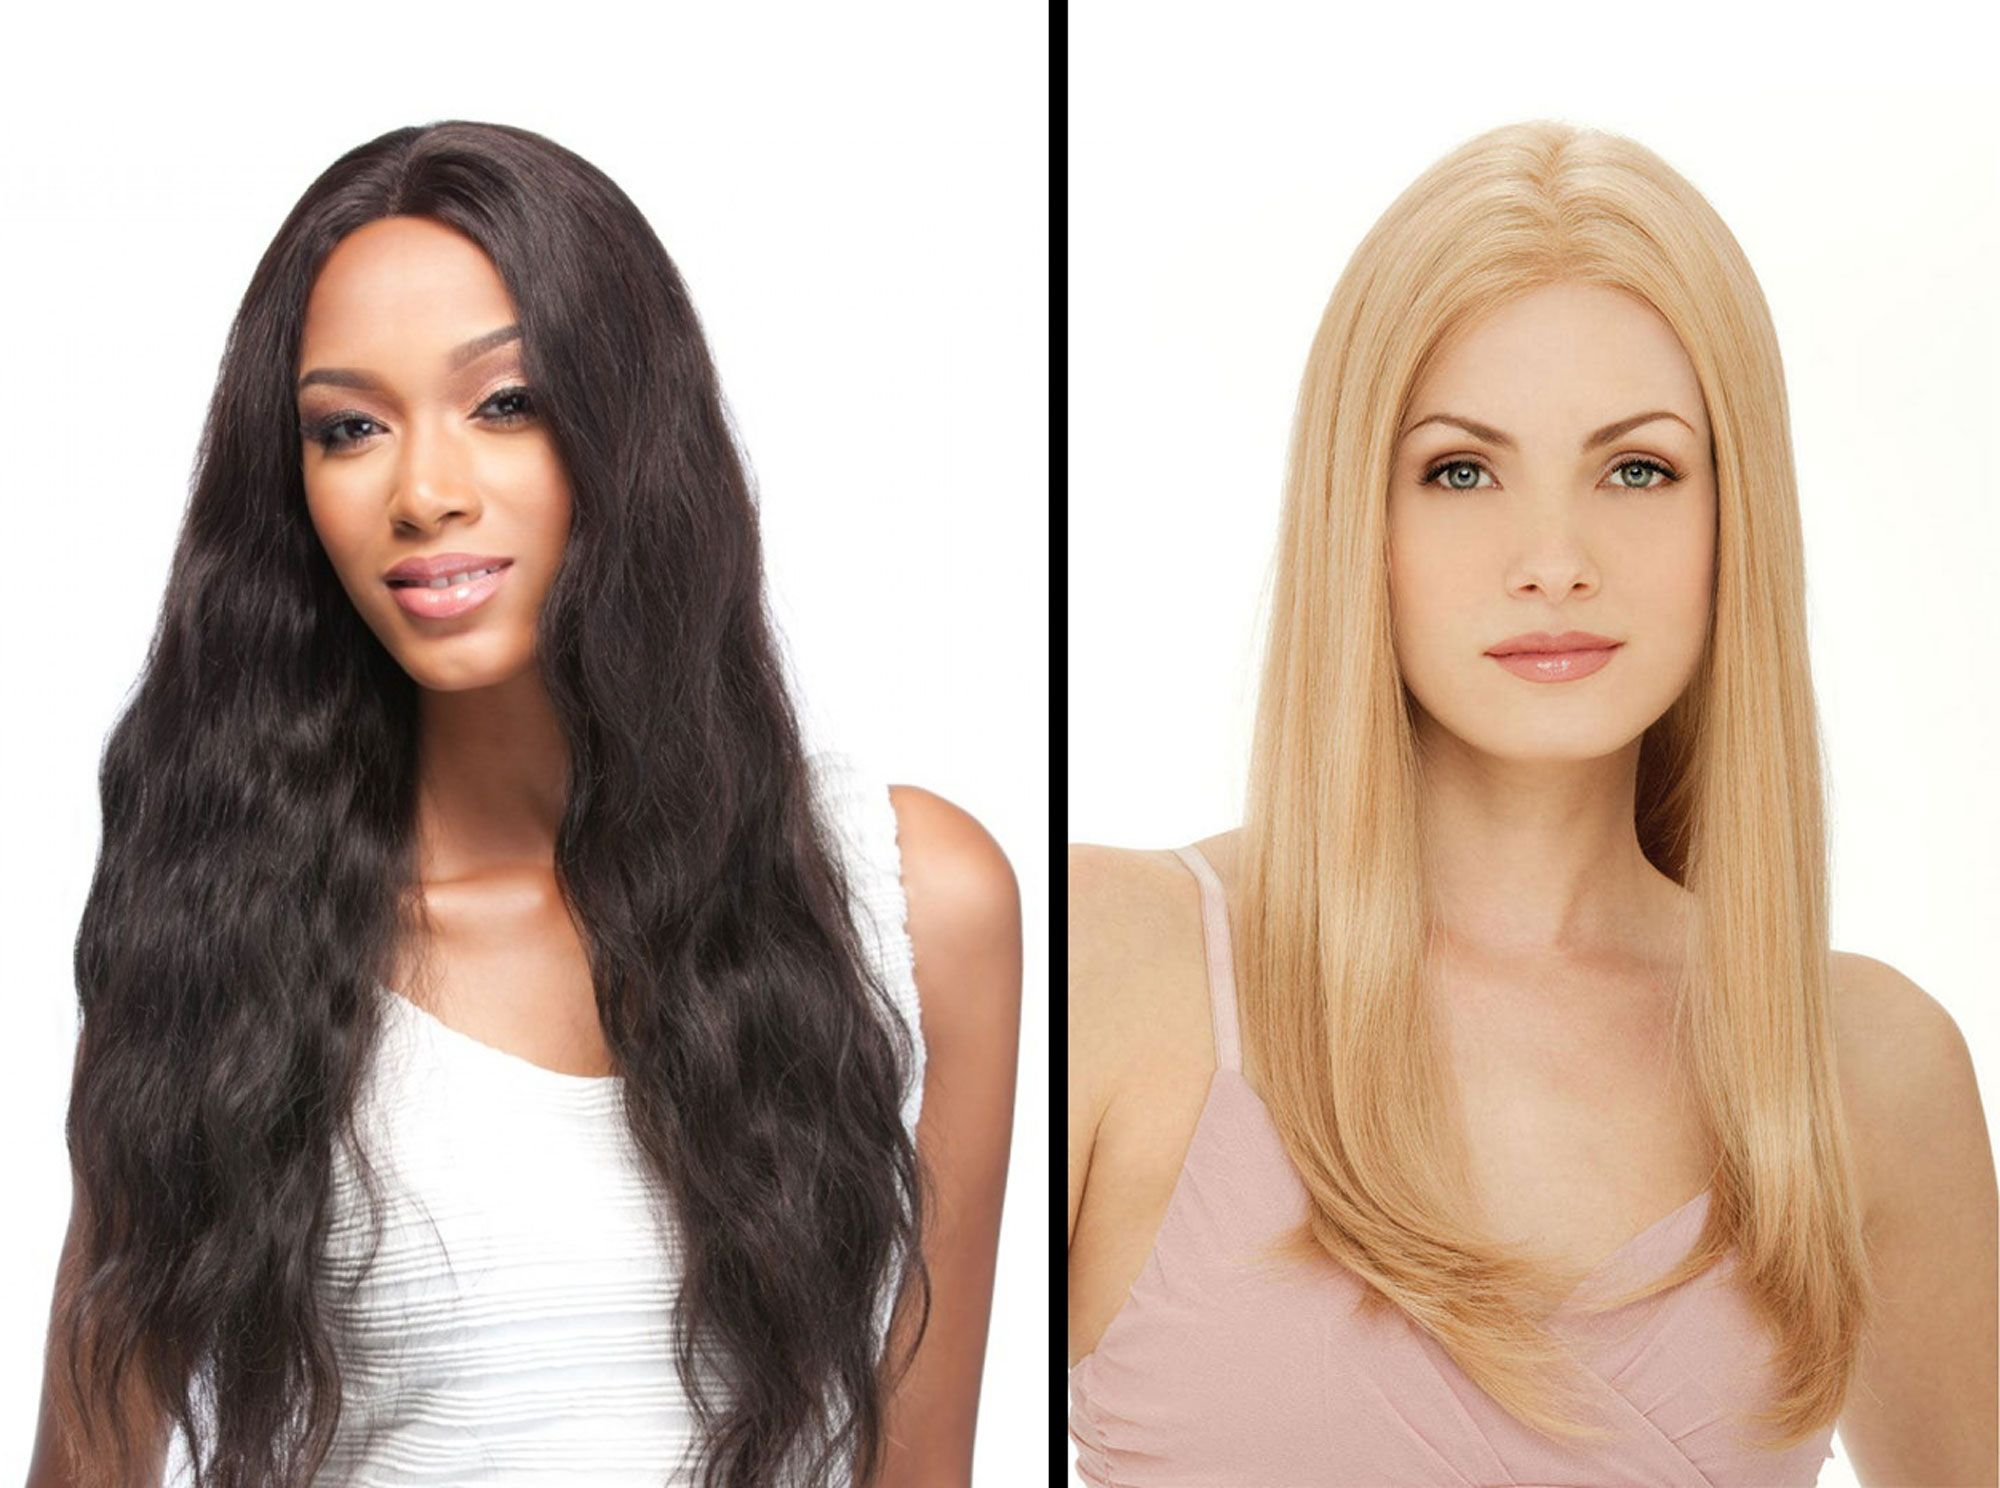 9 Insane Facts About the Human Hair Used in Wigs and Extensions 8a684af2d